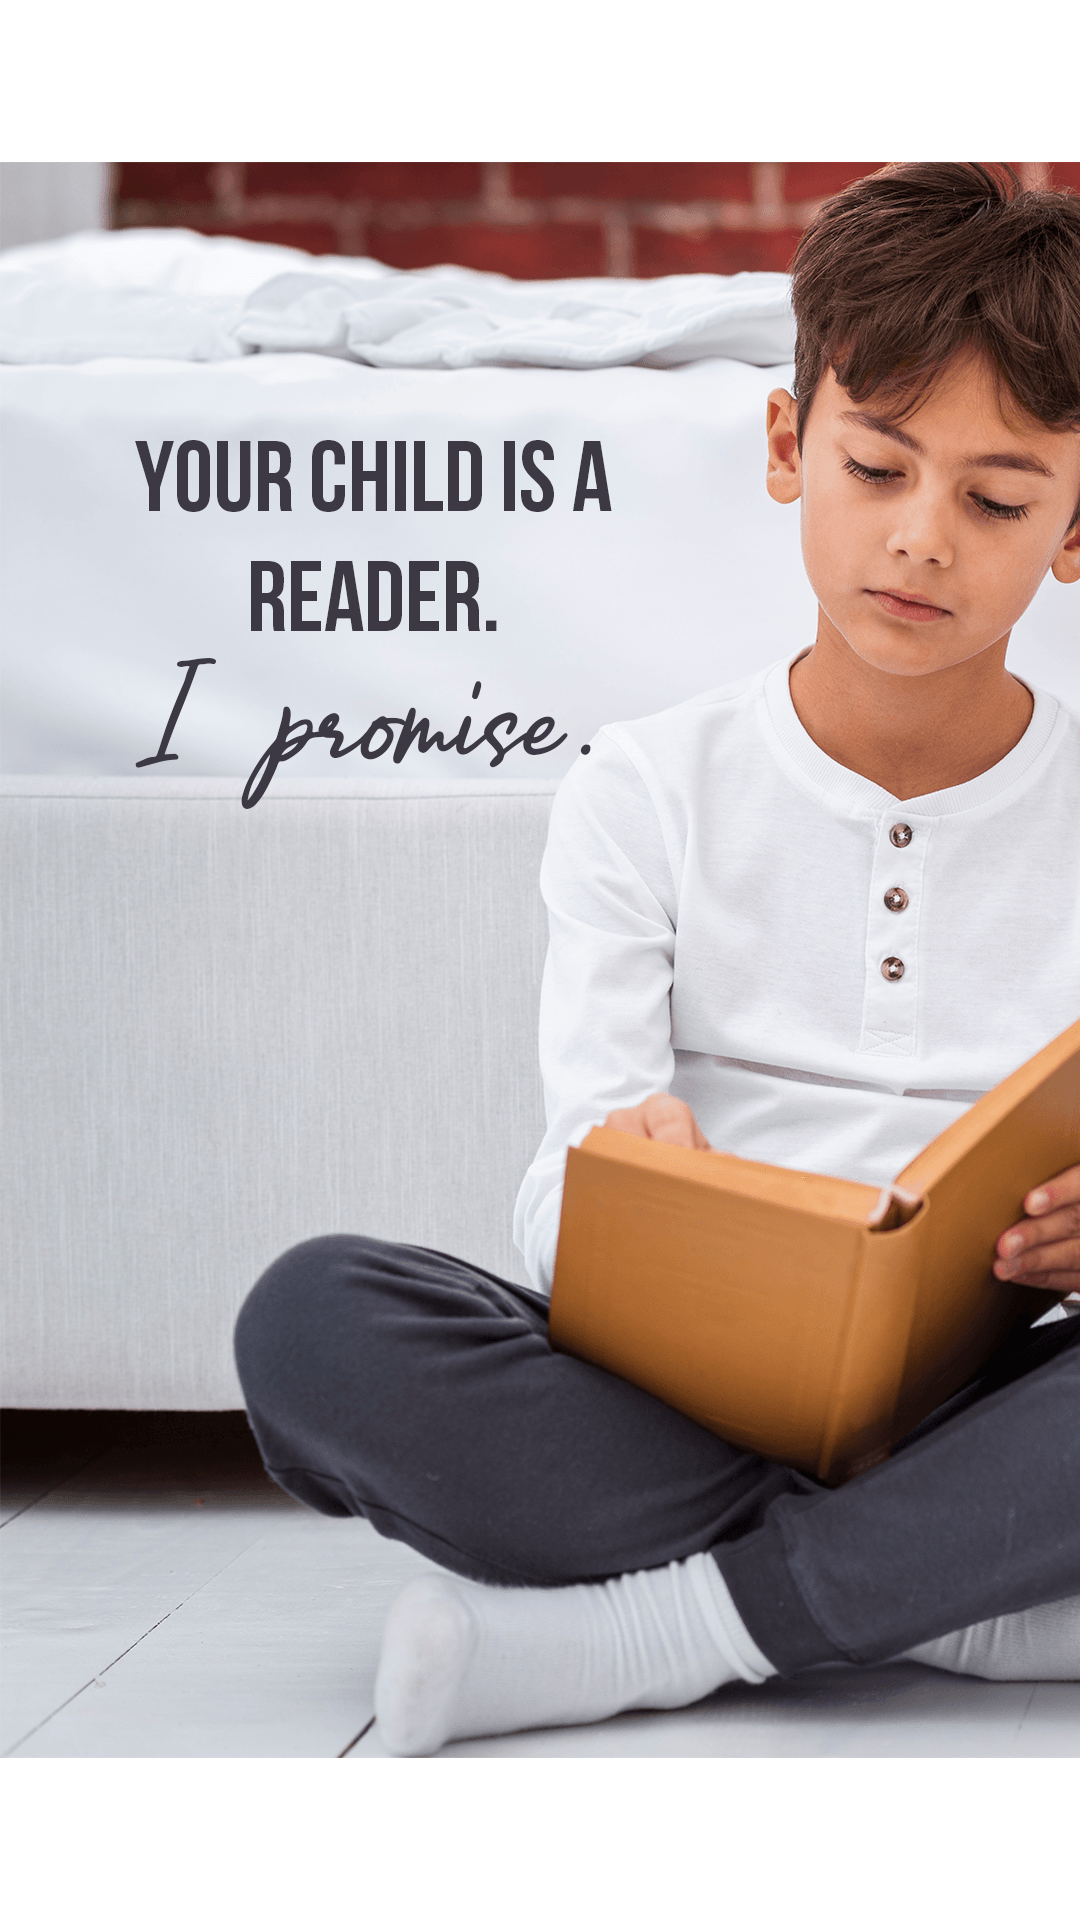 Just because your child hasn't found a book that speaks to him yet, it does not mean that he is not a reader. Your child is a reader. I promise.